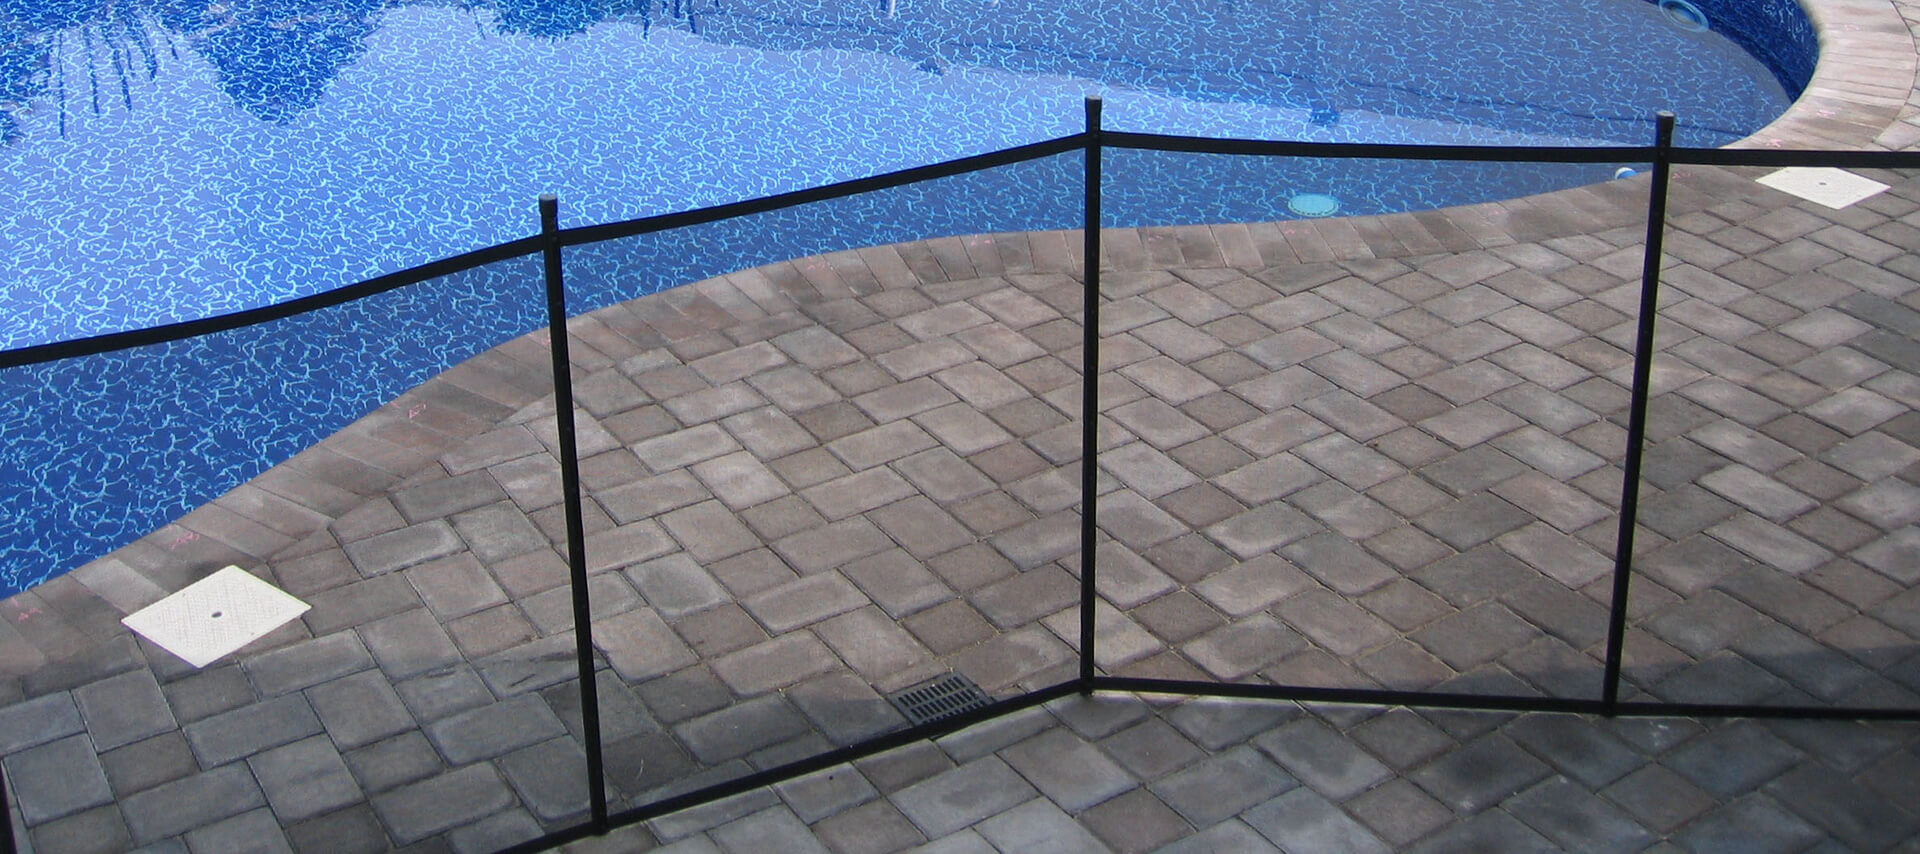 Child Safety Fence By S Amp R Pools Amp Spa Inc Pool Safety